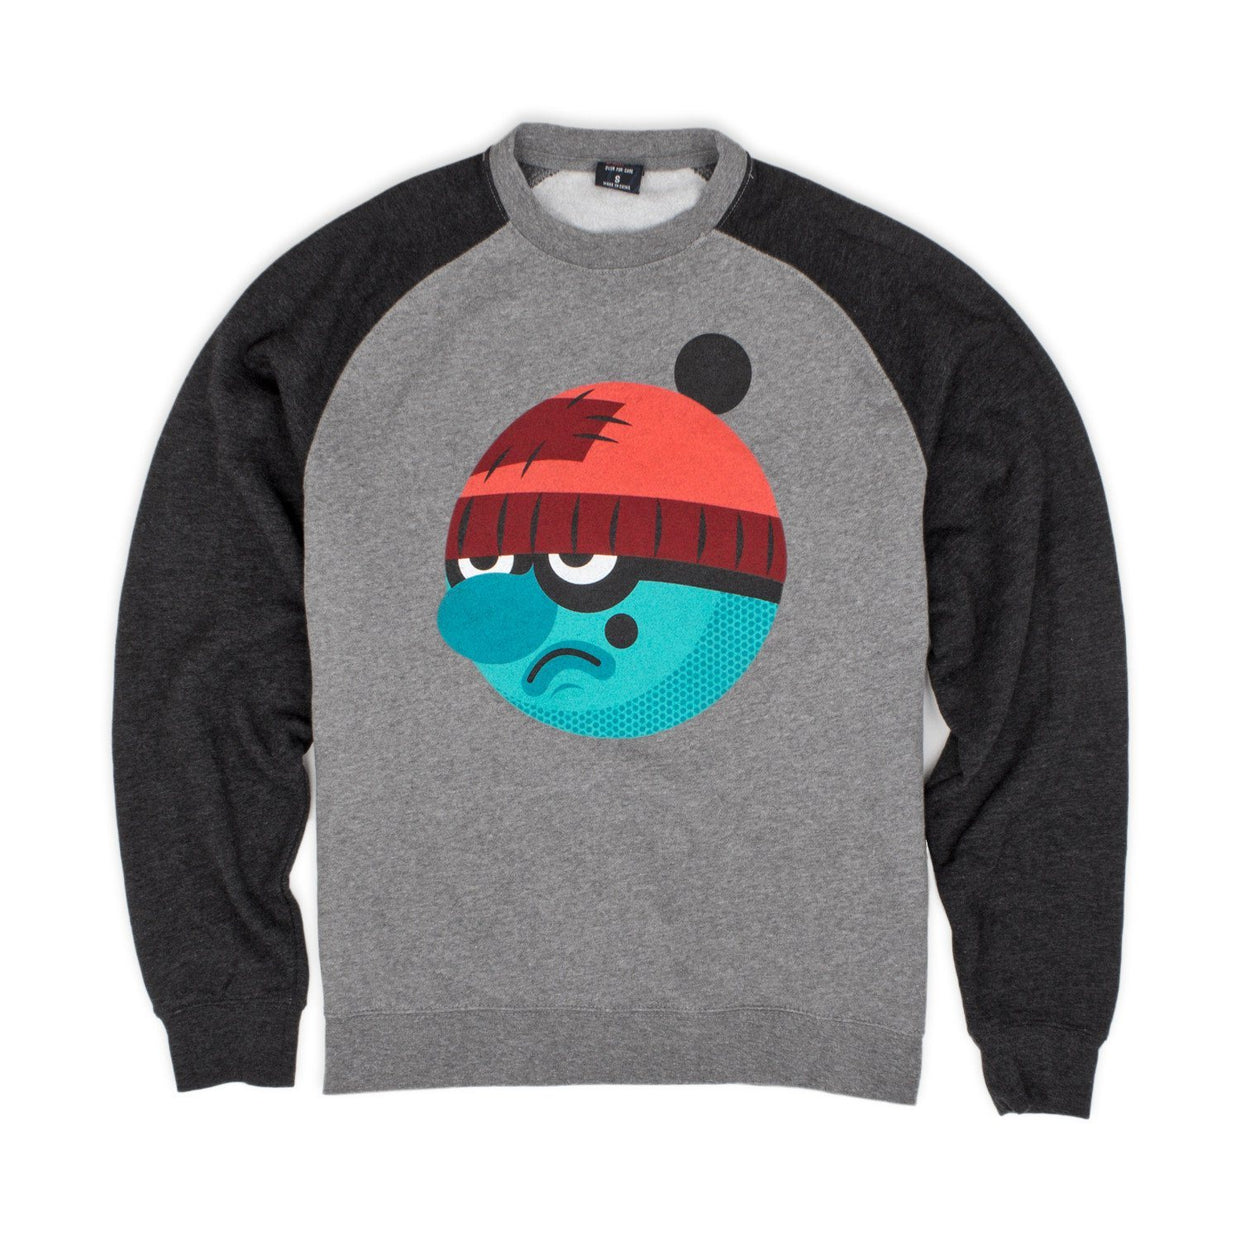 Andy Mineo 'Hero' Crew Sweatshirt